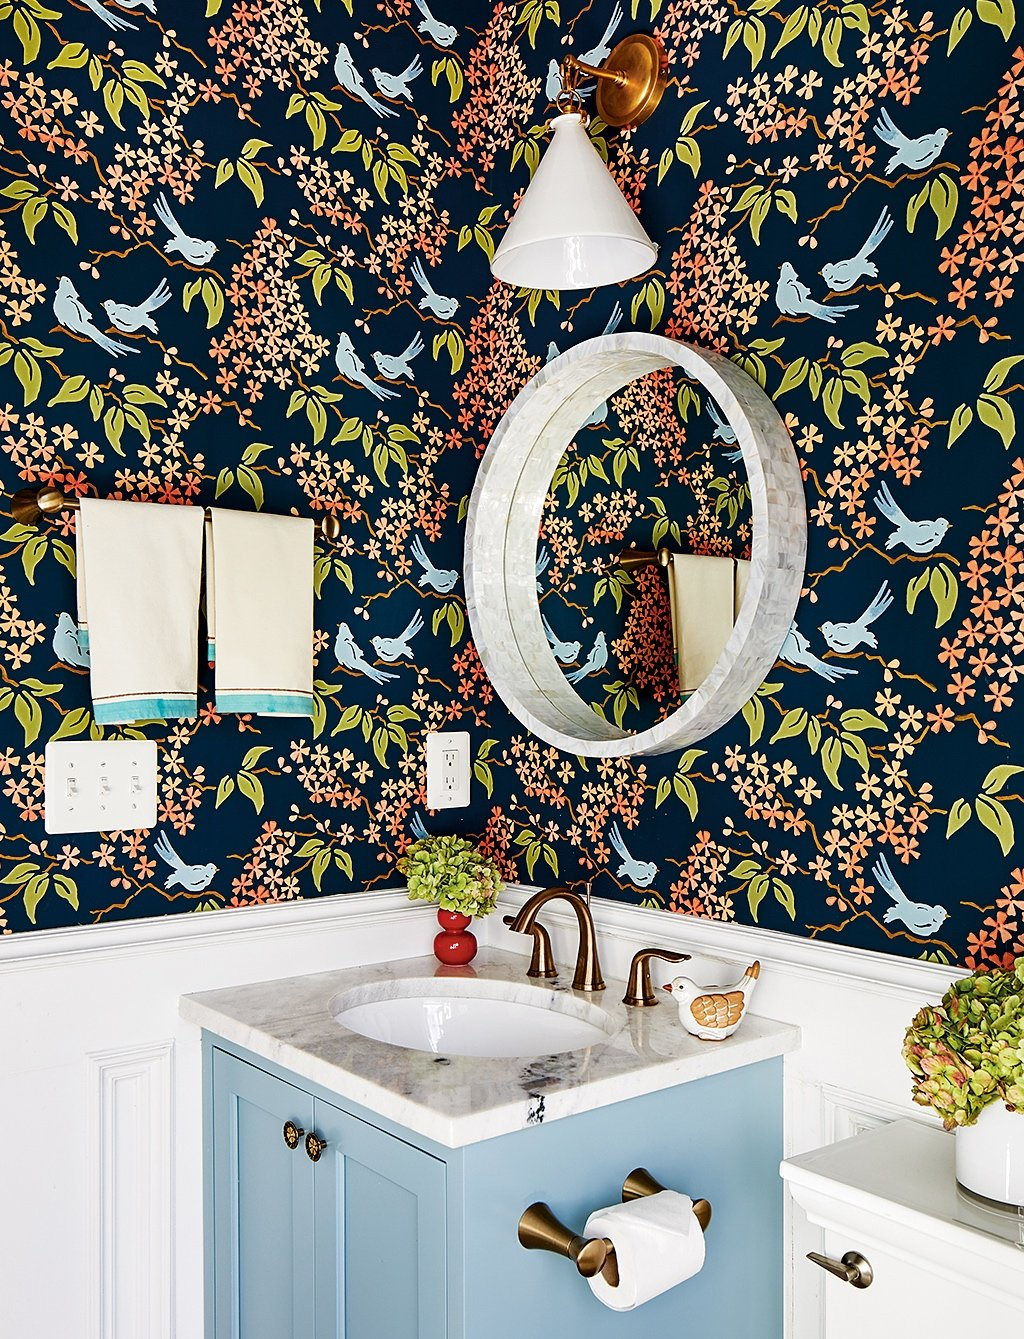 """Birds"" by Galbraith & Paul. Designer: Pamela Harvey for clients in Arlington. Photograph by Stacy Zarin Goldberg."